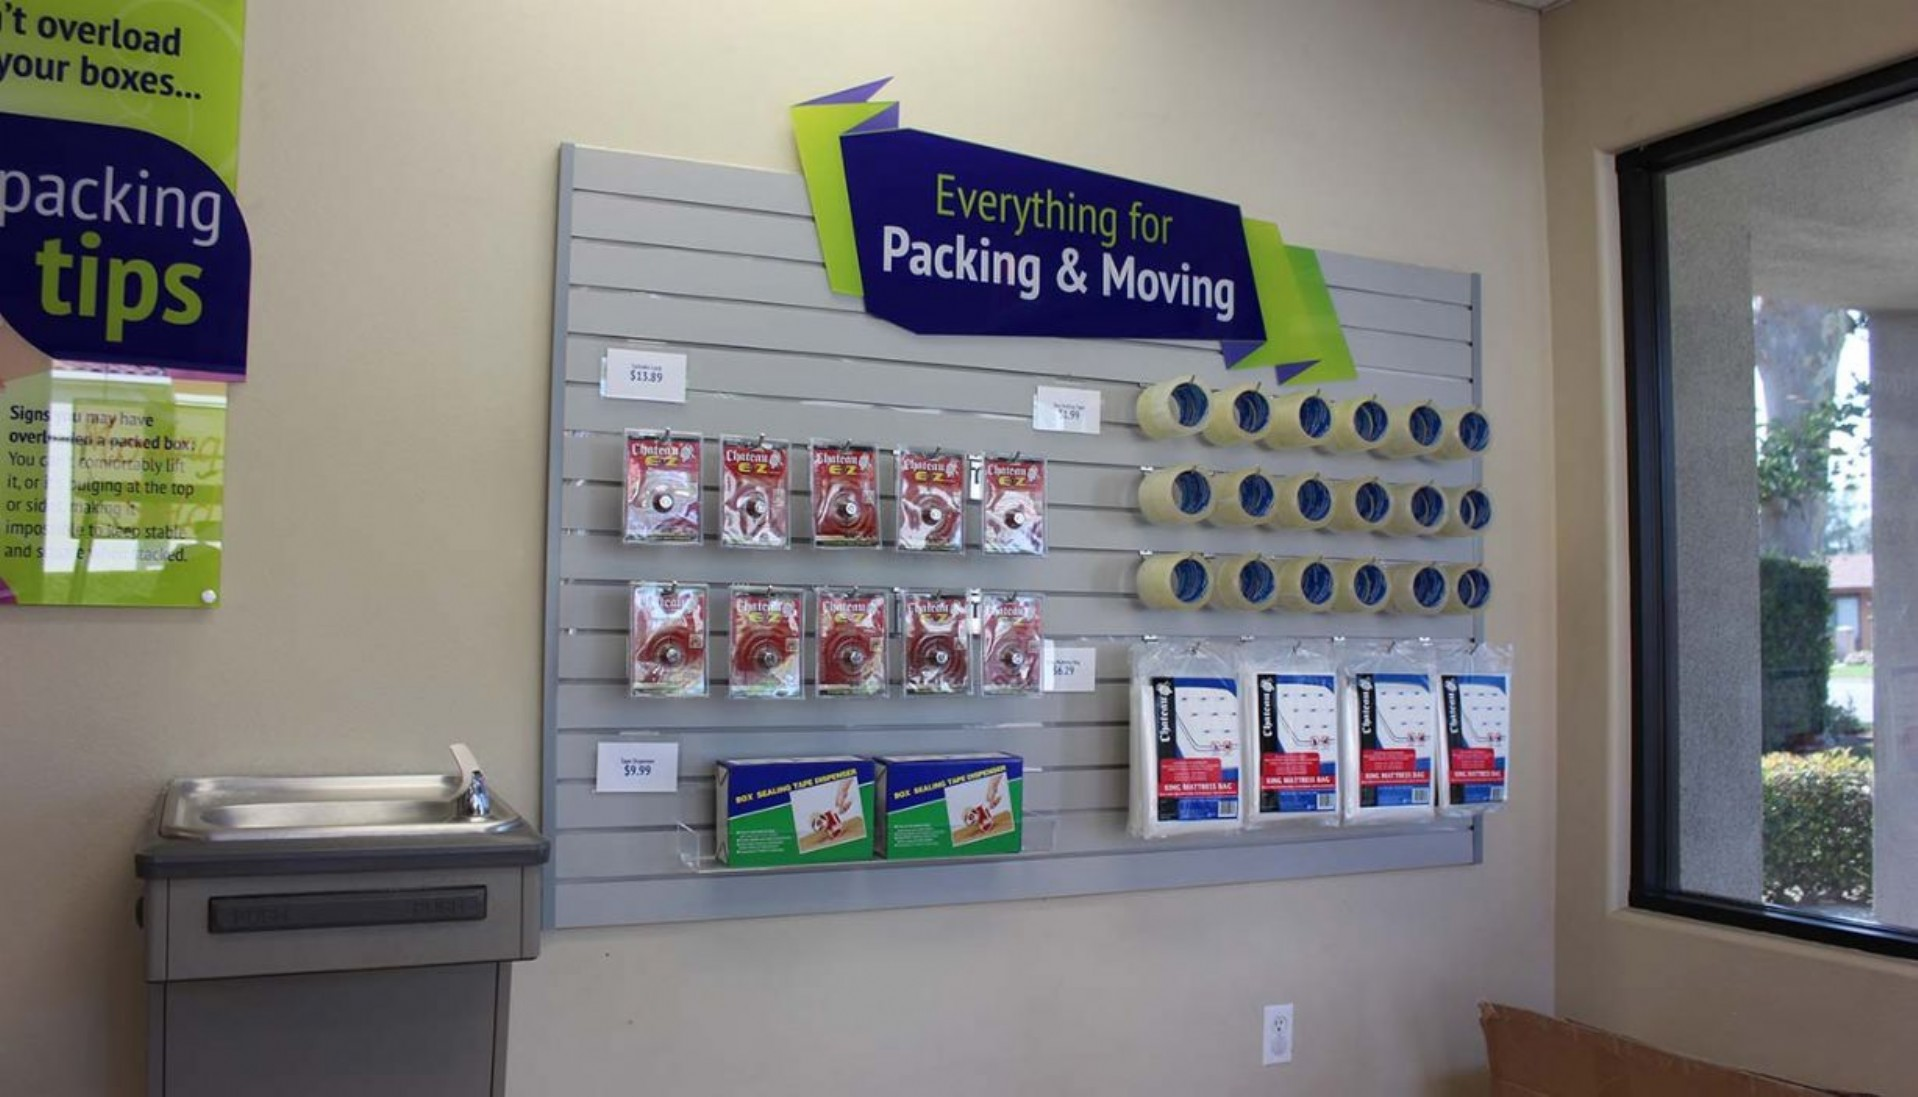 Rental office merchandise display wall with tape, bubble wrap, mattress bags for sale